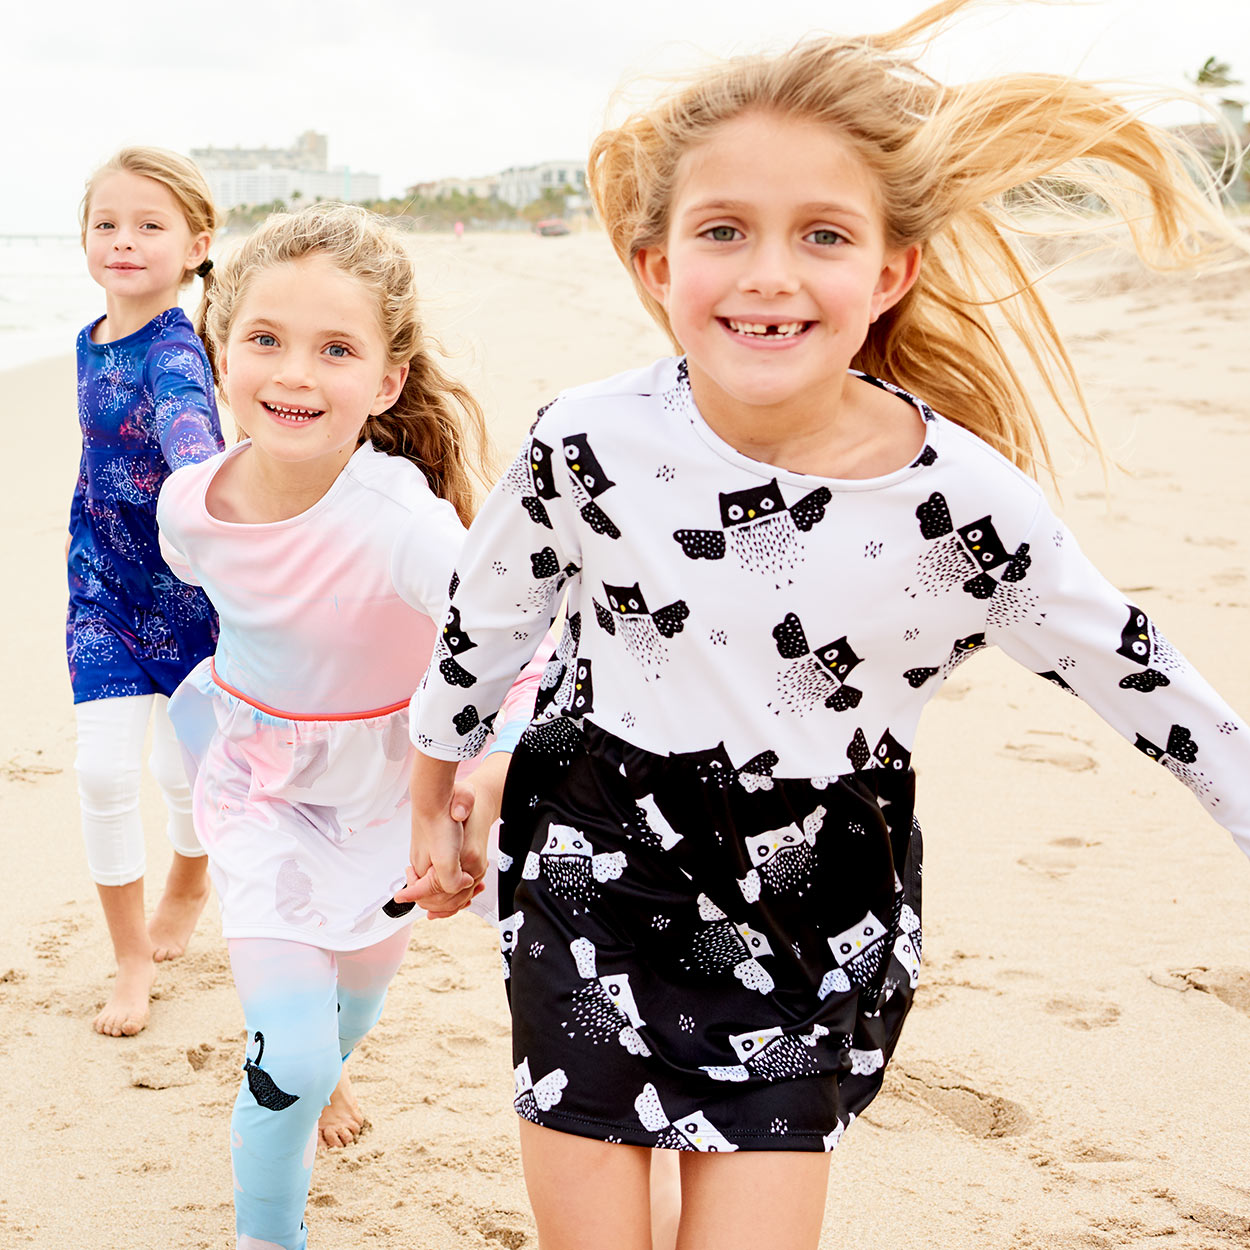 Owls Dress Girls Size 2 12 Black White Moisture Wicking Three Girls Running On The Beach Smiling Sunpoplife